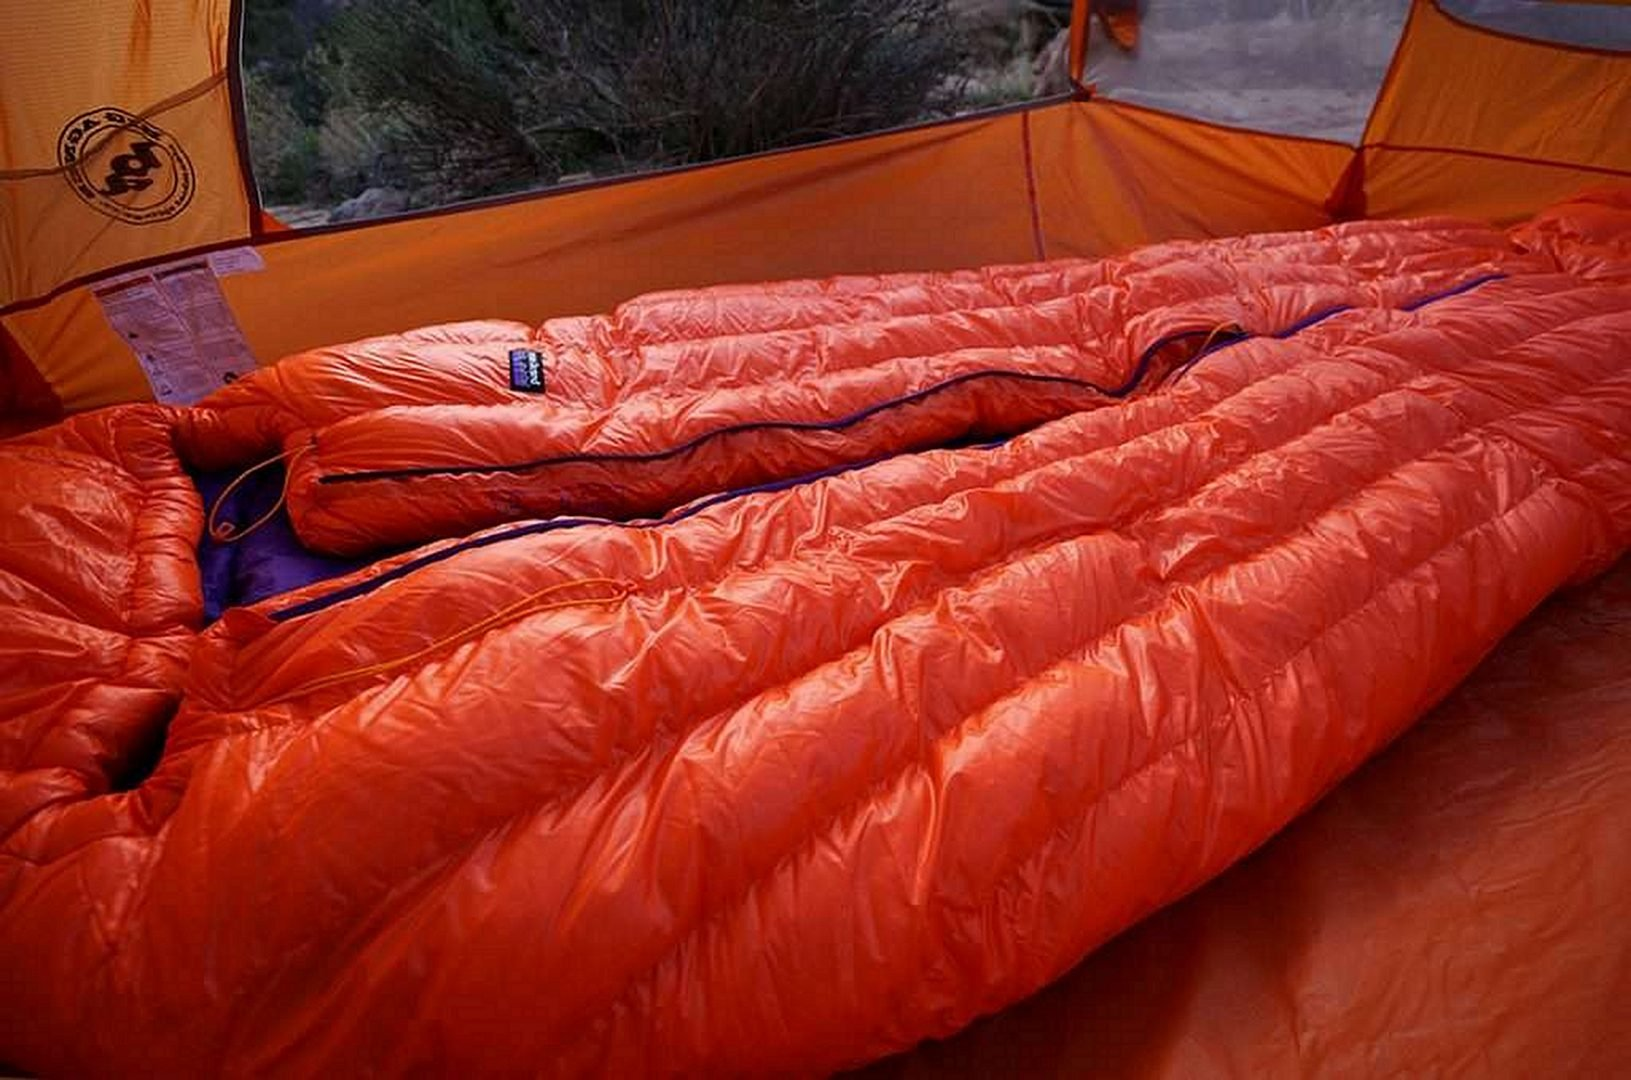 Red sleeping bag inside a tent